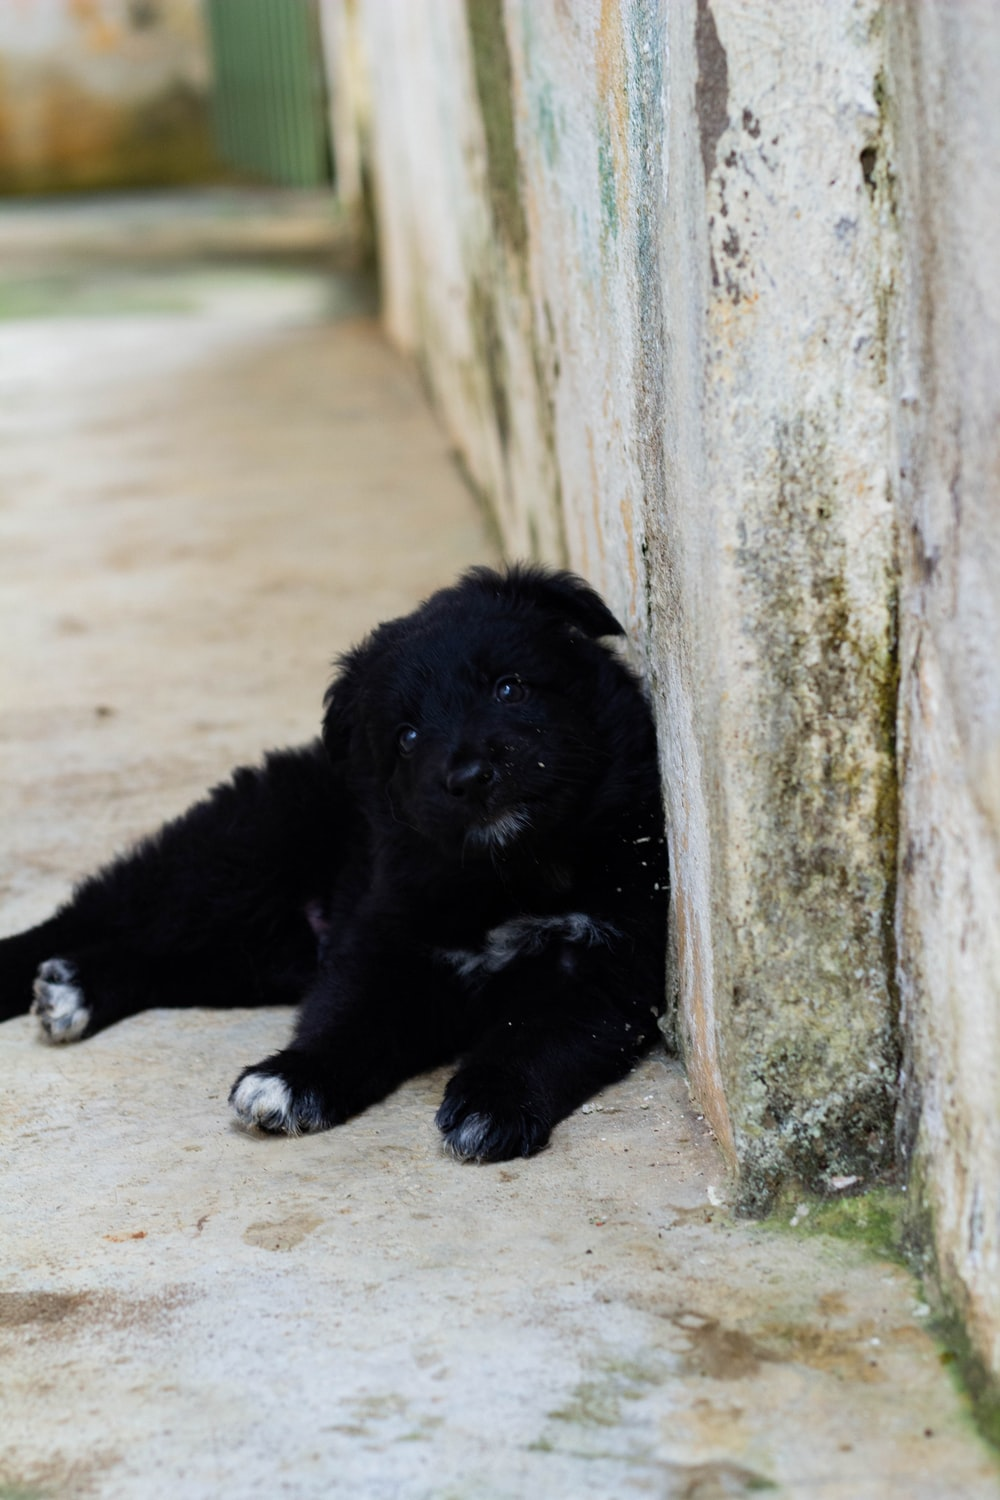 black and white short coated puppy lying on brown sand during daytime